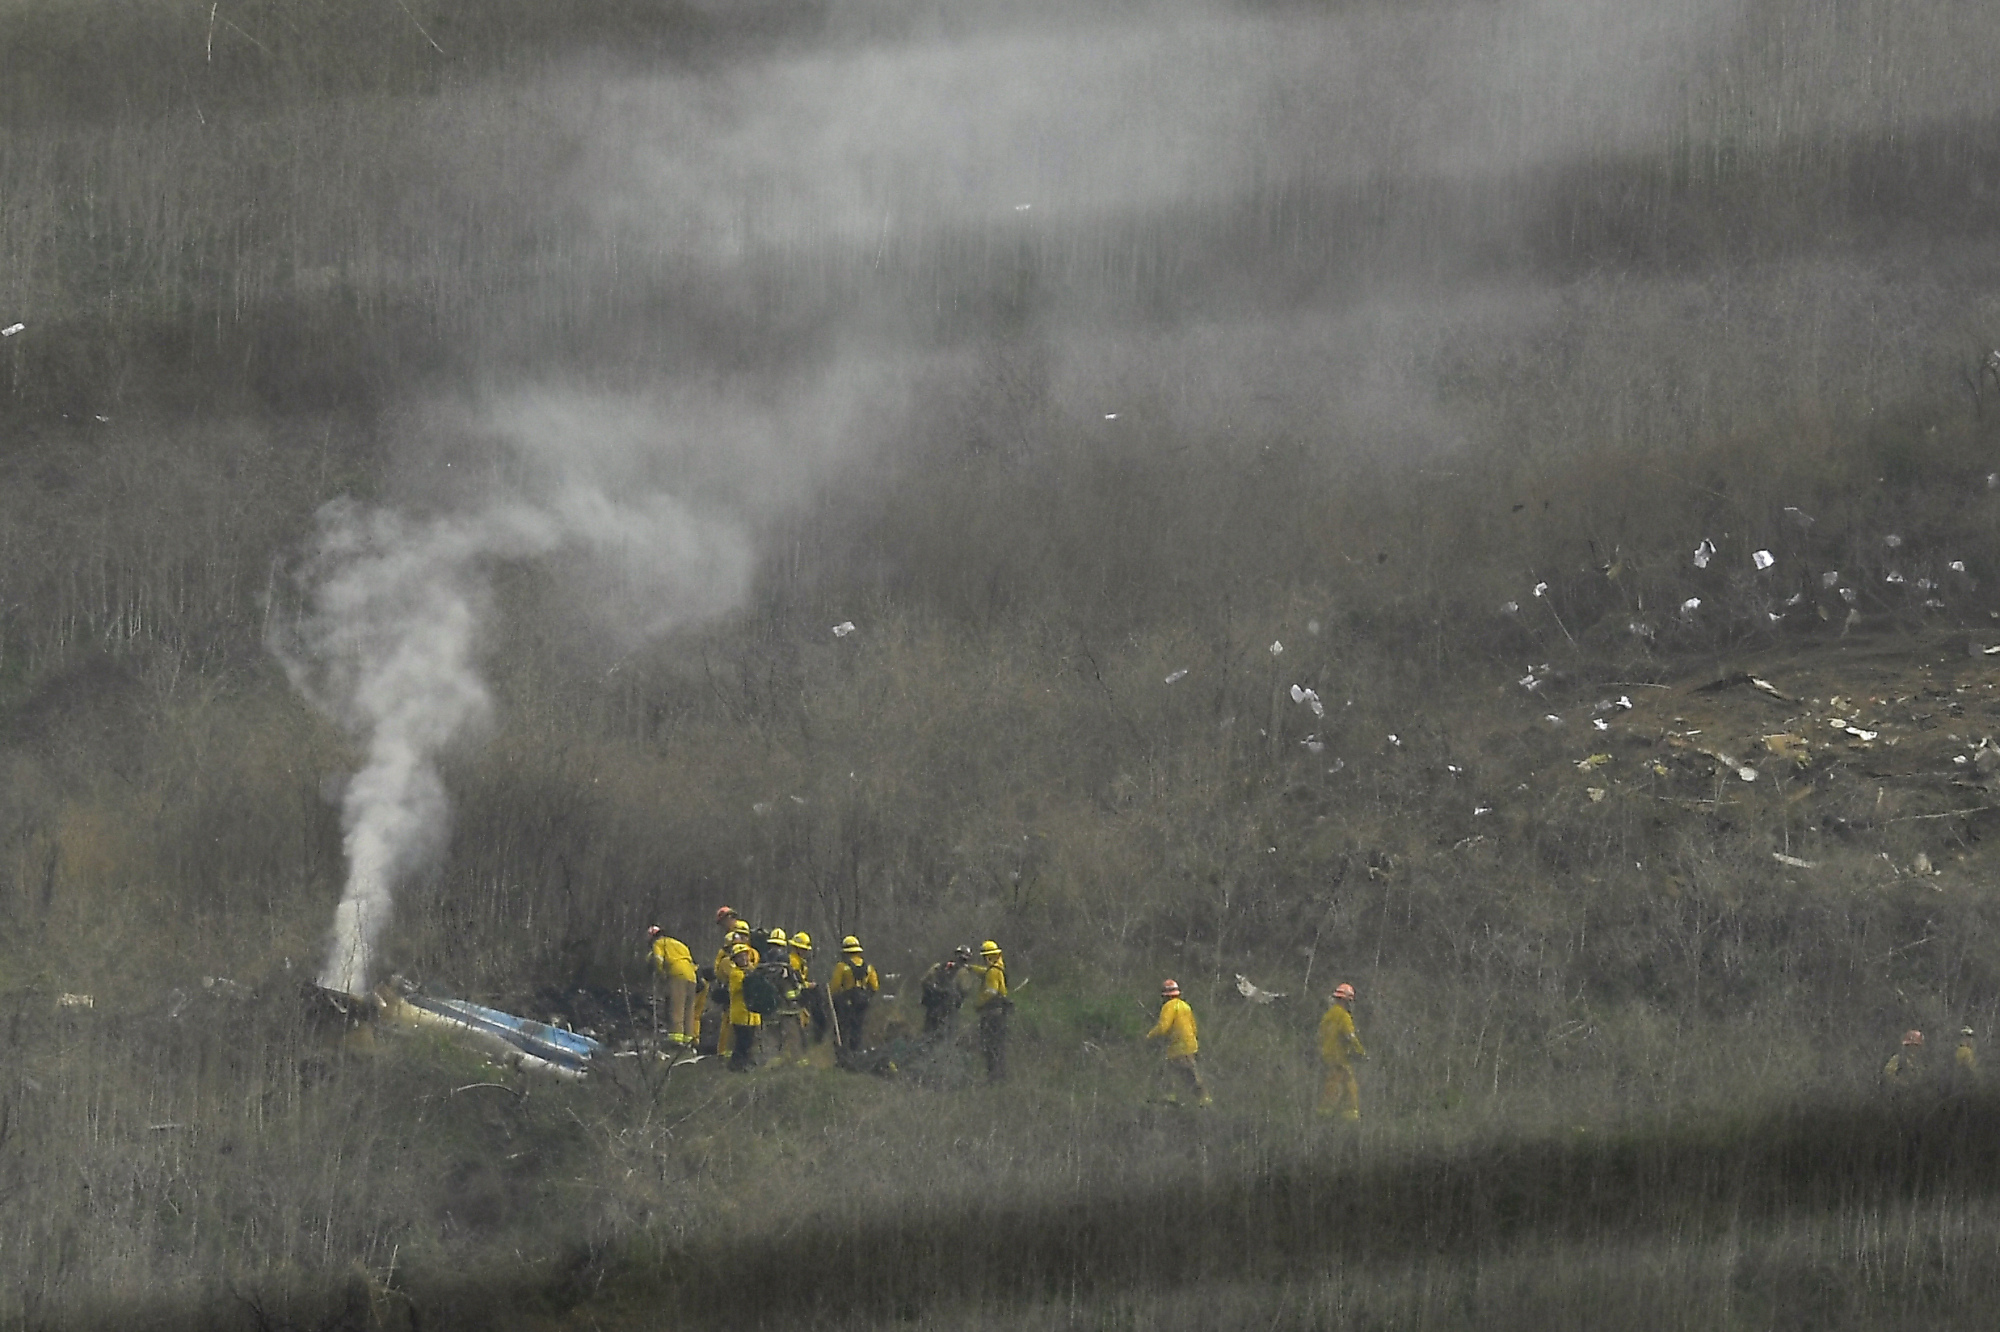 Firefighters work the scene of a helicopter crash that killed former NBA basketball player Kobe Bryant Sunday in Calabasas, California.   AP